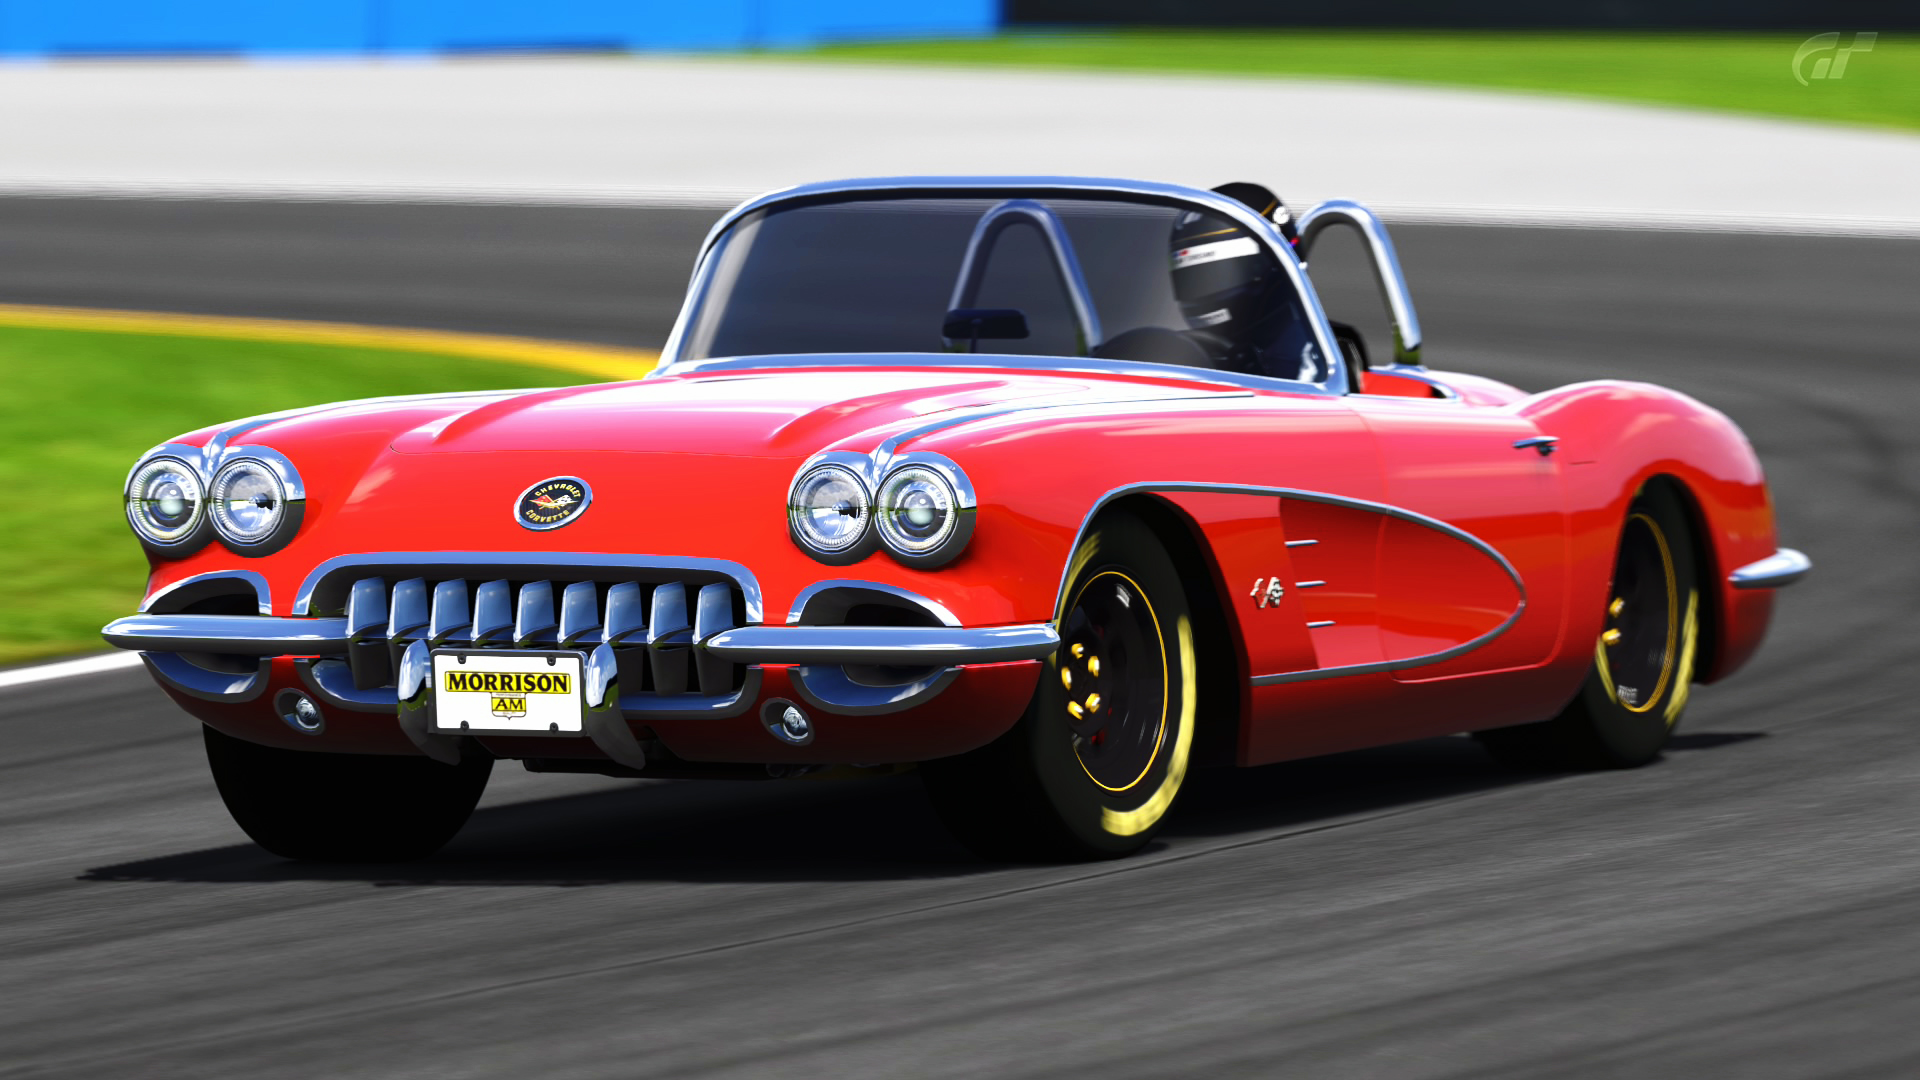 1960 ART Morrison Corvette (Gran Turismo 5) by Vertualissimo on